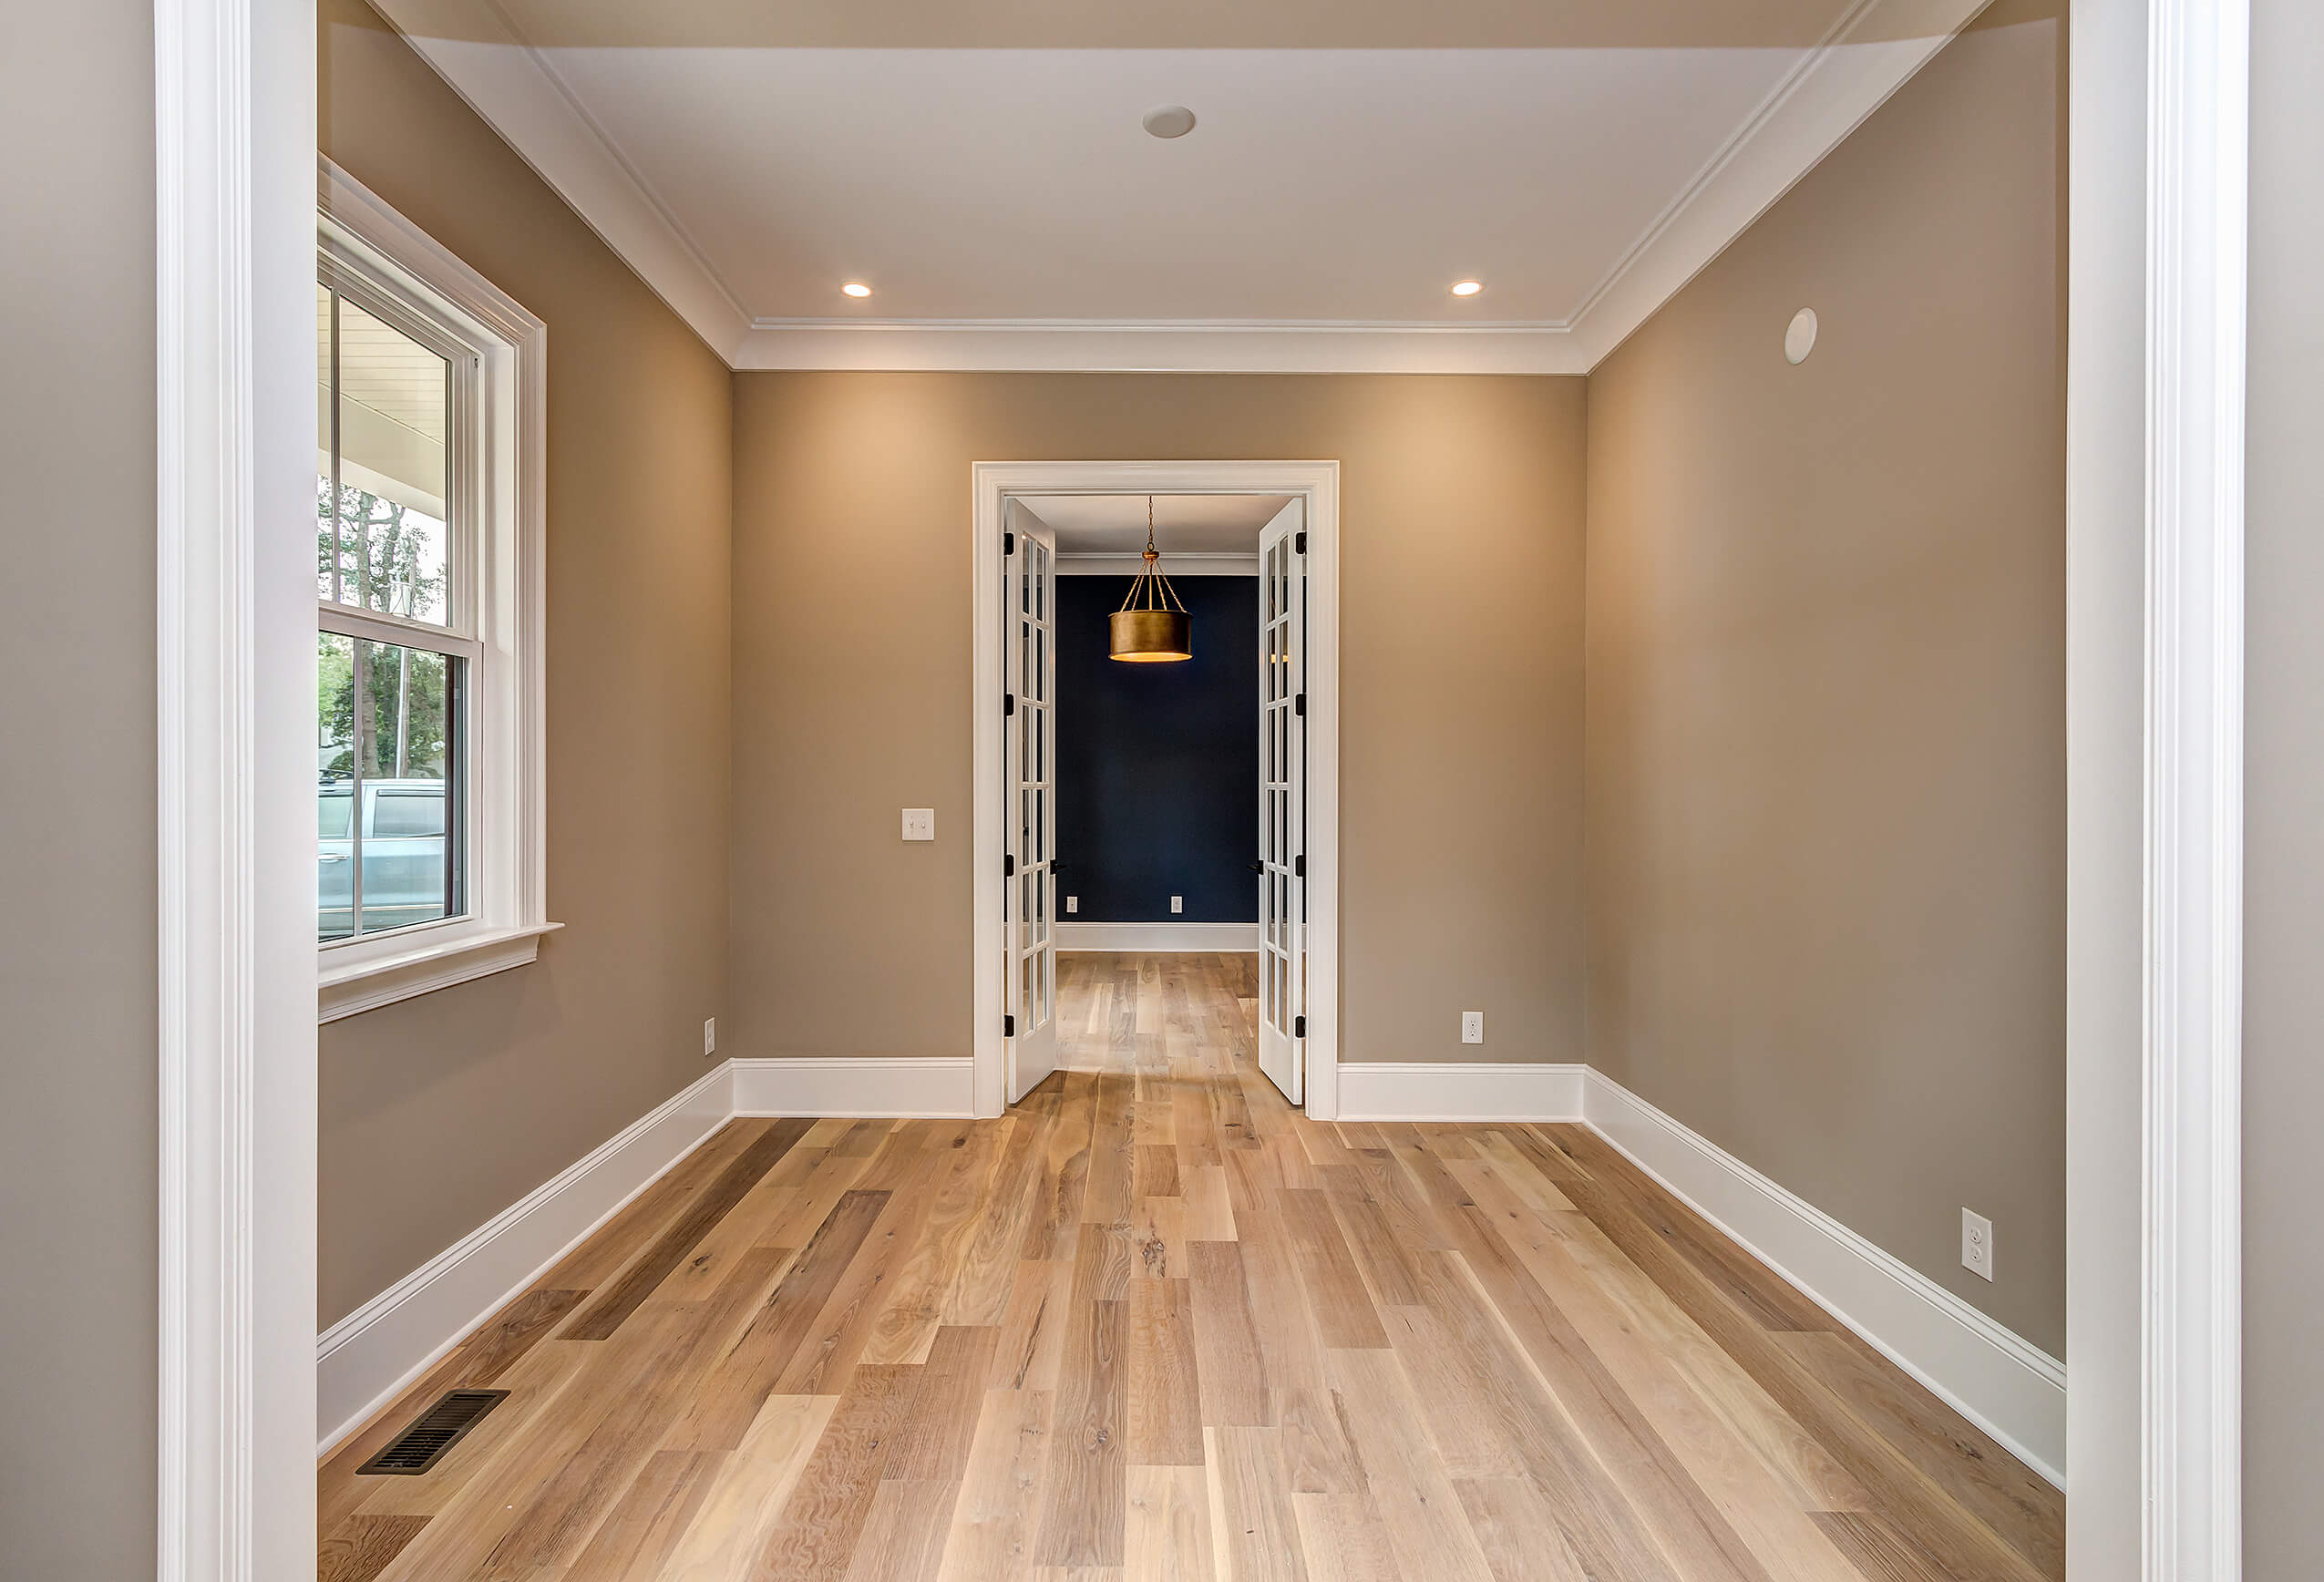 Rubio Monocoat products keep white oak floor looking natural.